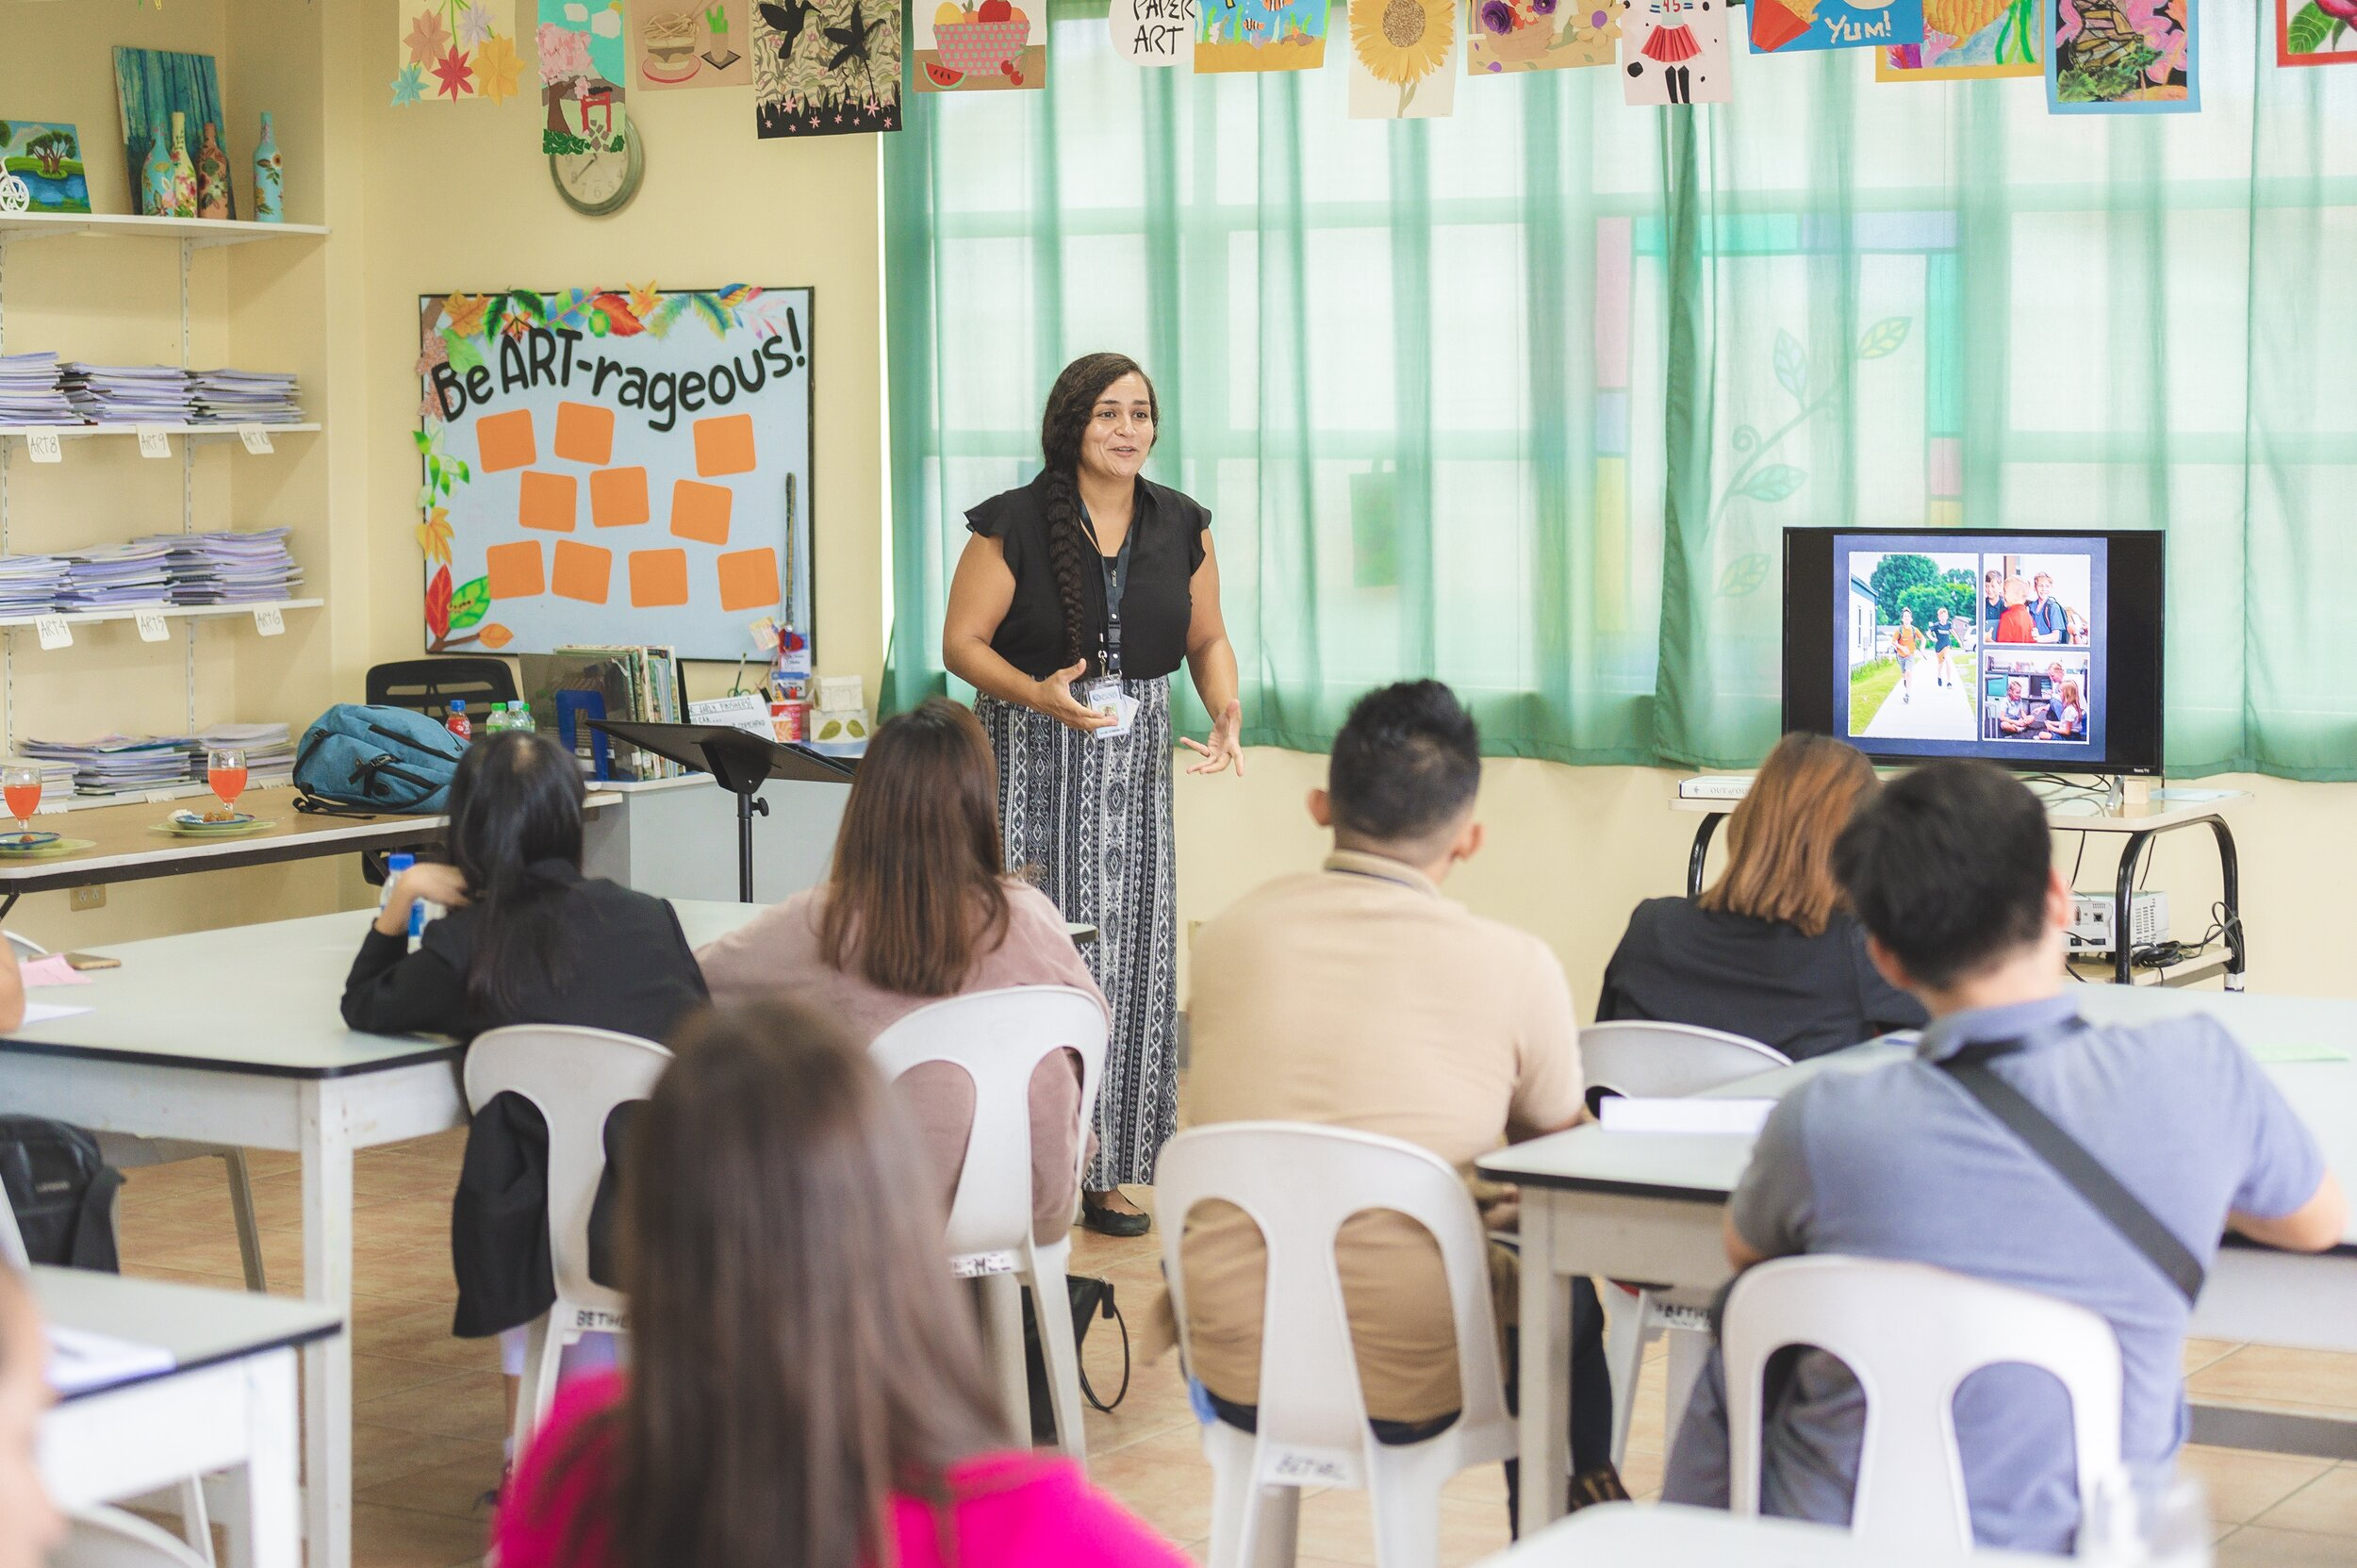 Academy elementary teacher, Leafa Vagatai, facilitated workshops on early education and music as a tool in the classroom. Leafa has over a year experience teaching in Filipino schools.